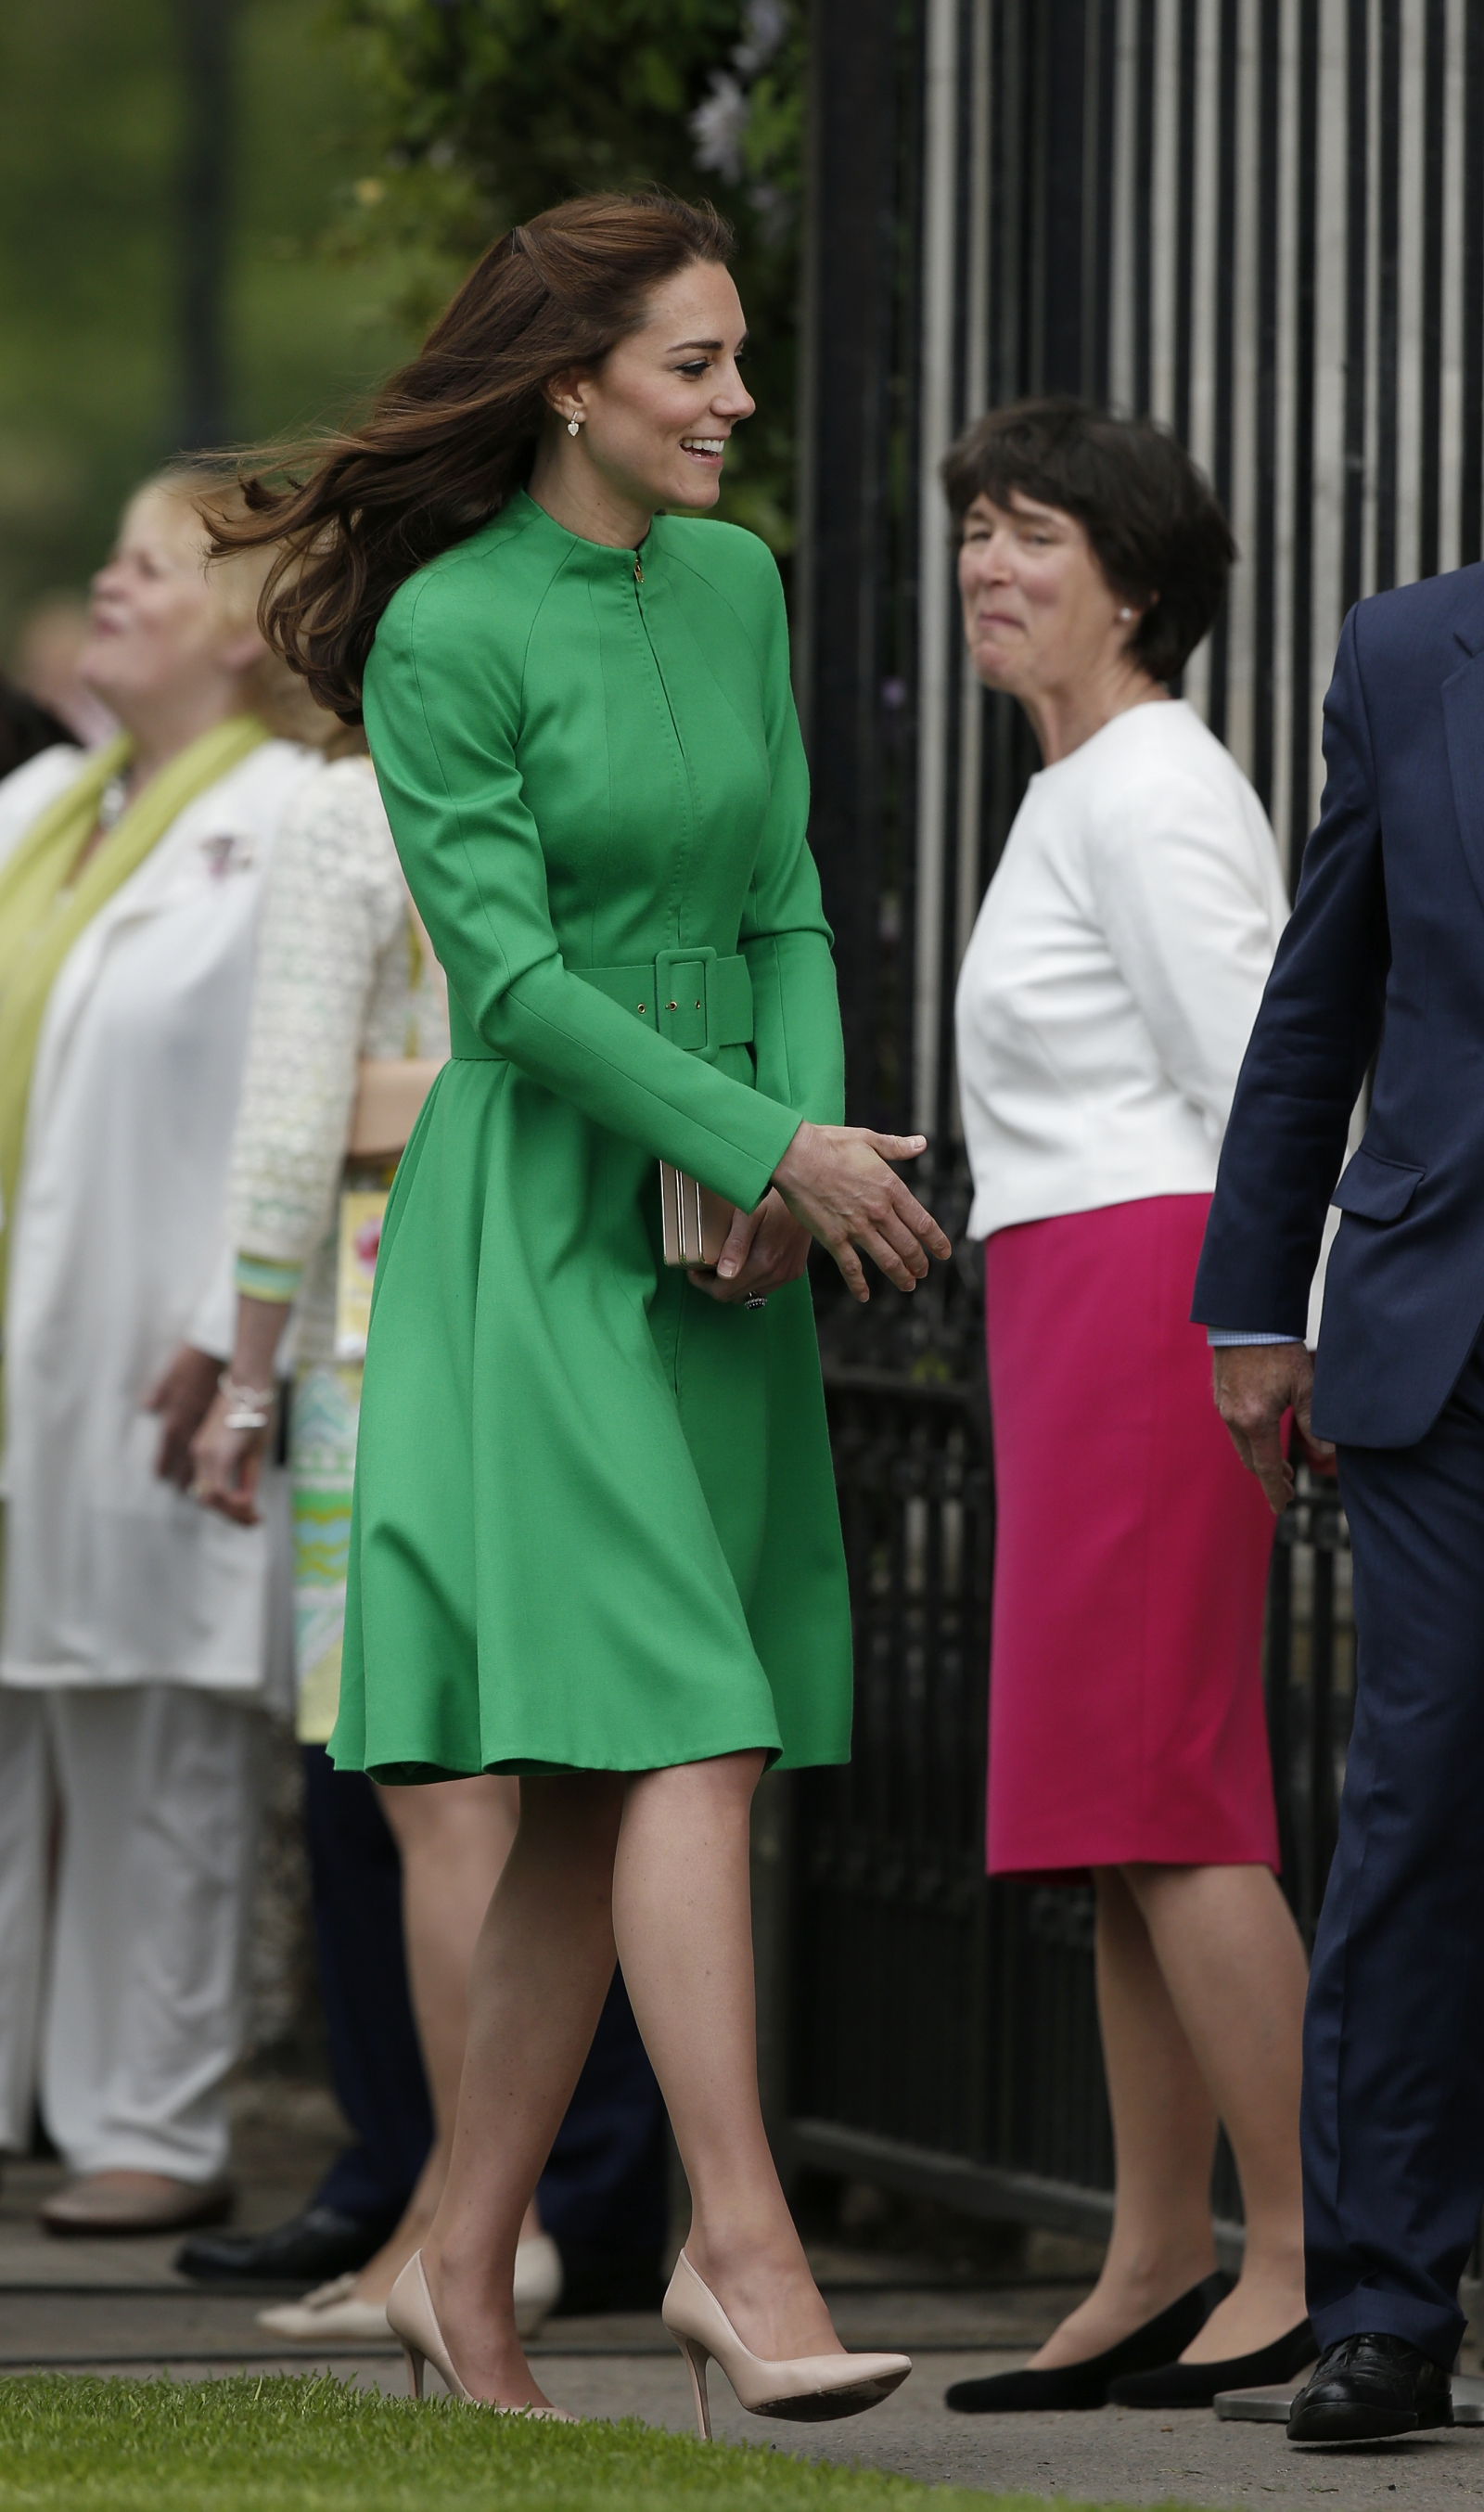 The Duchess of Cambridge wore a Catherine Walker coat dress